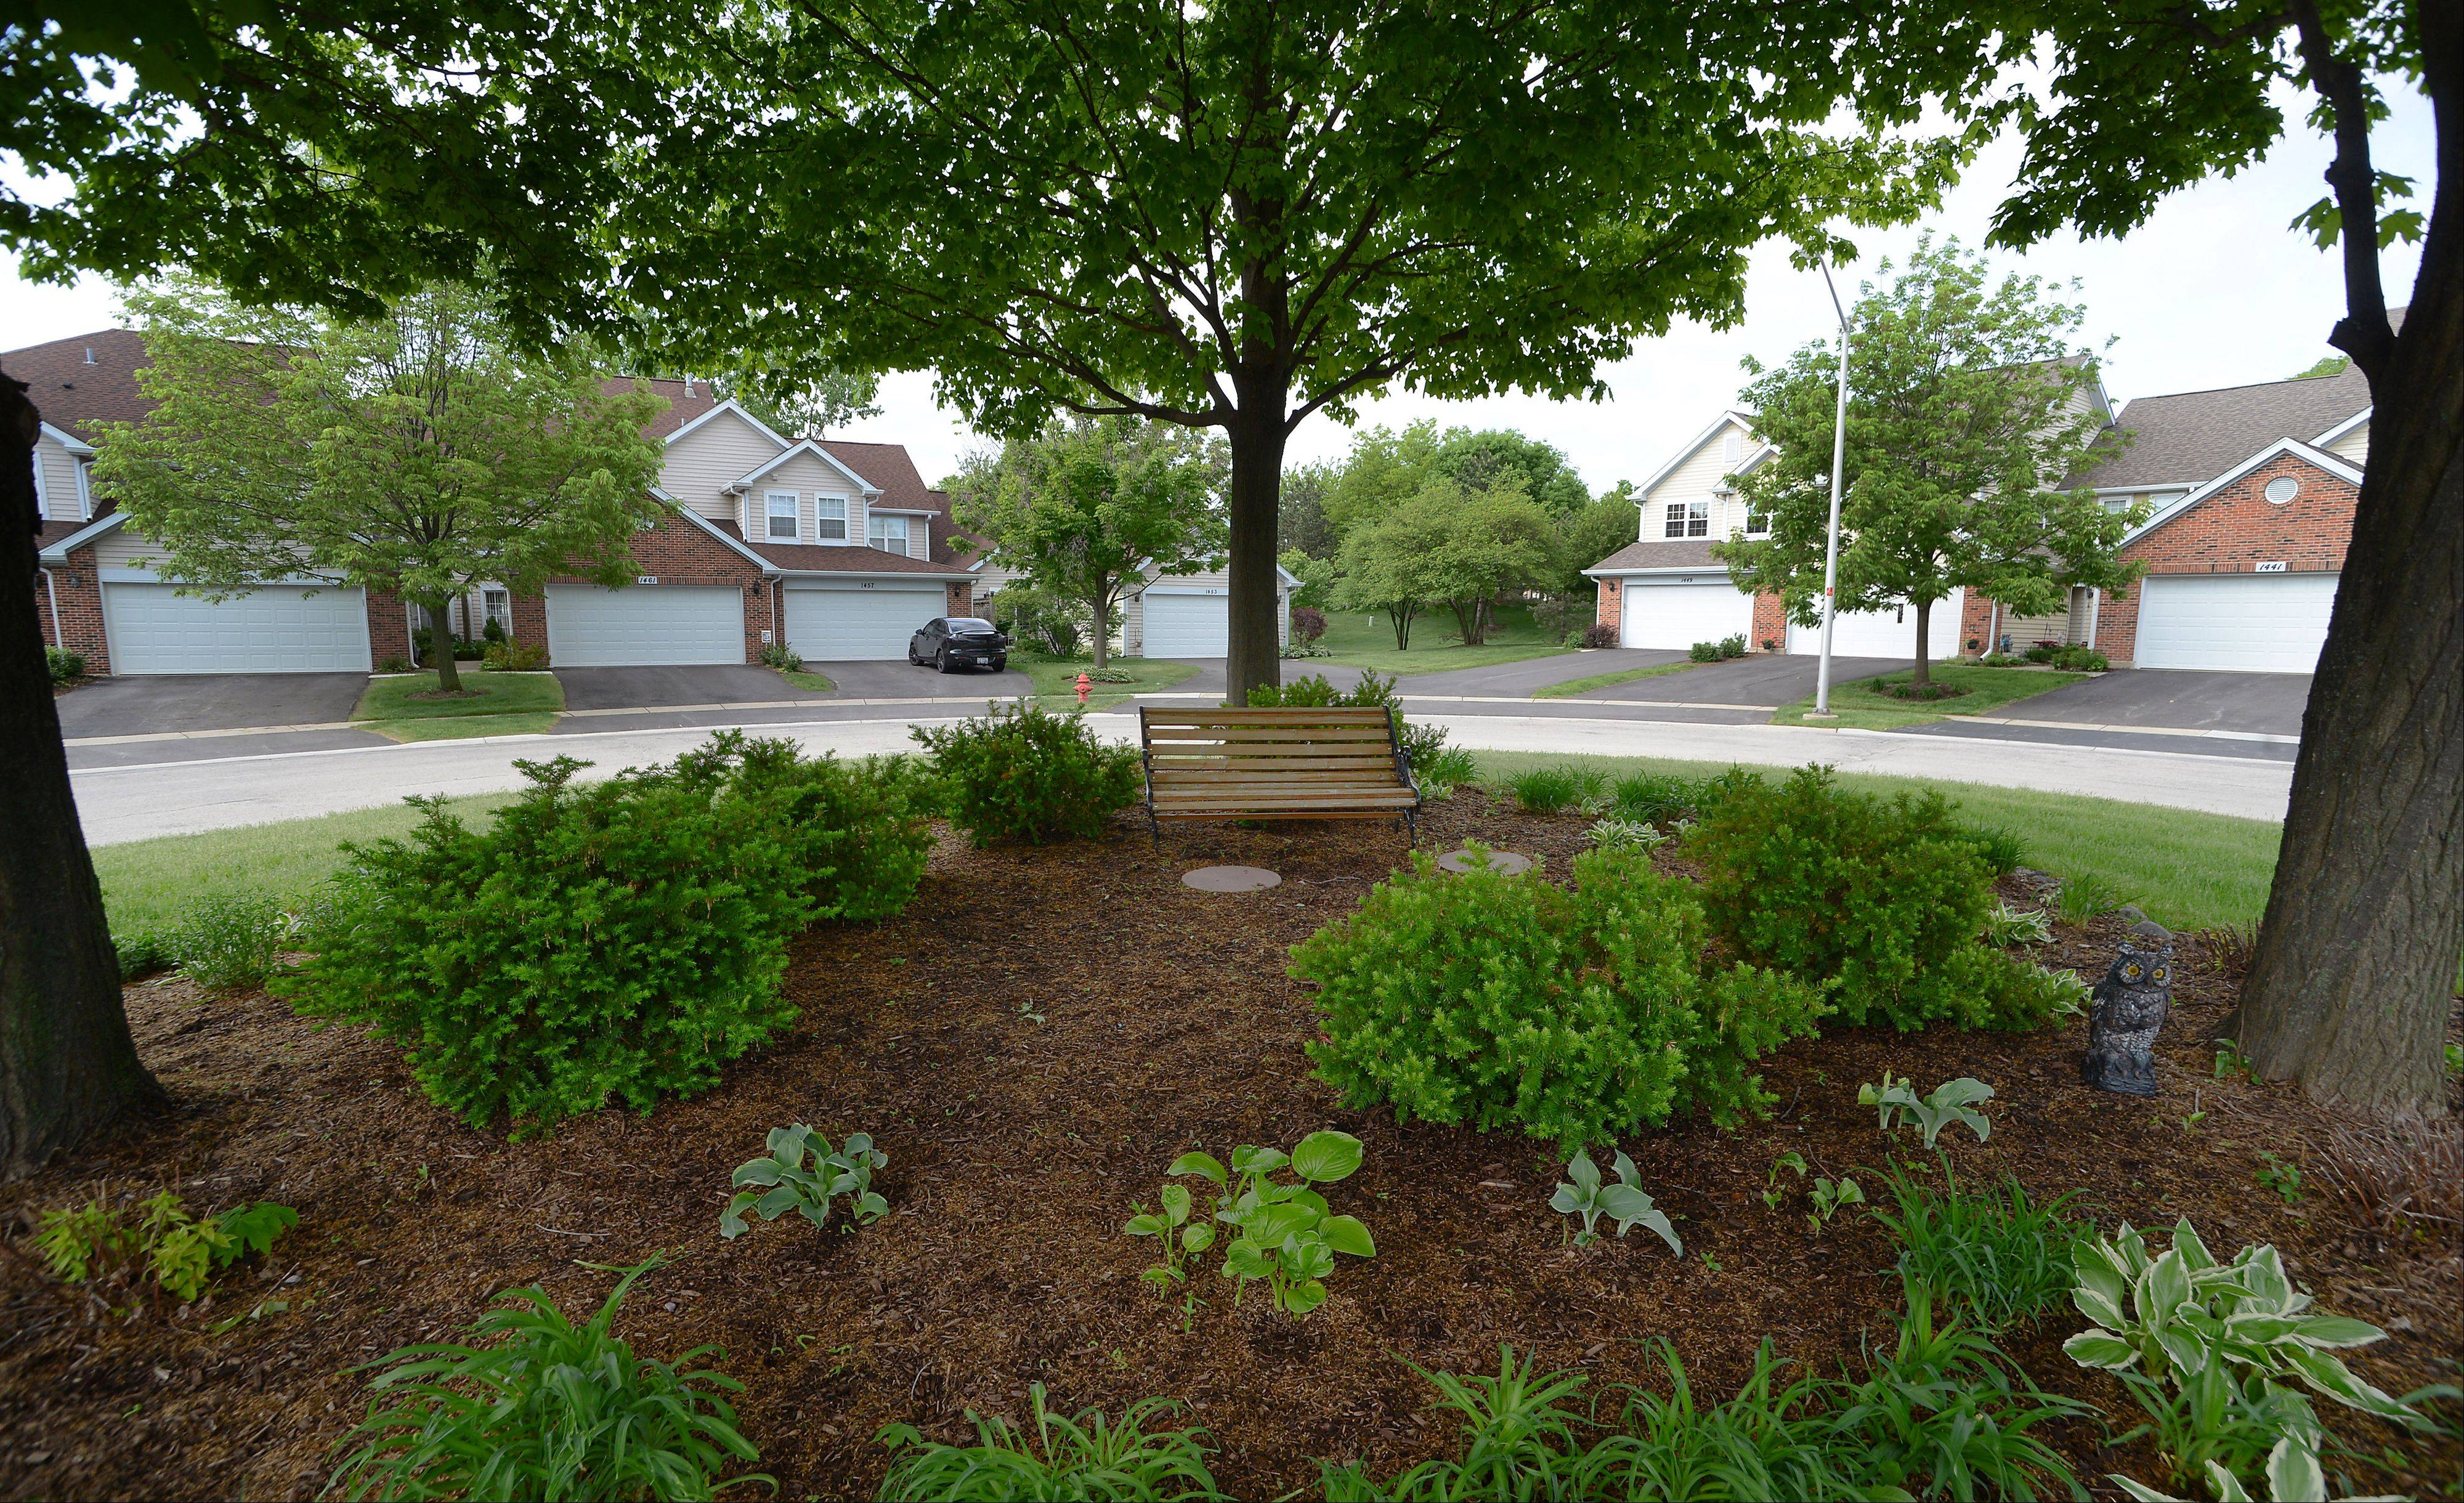 Residents can enjoy a small park nestled beneath the trees at the center of the Autumn Ridge community.